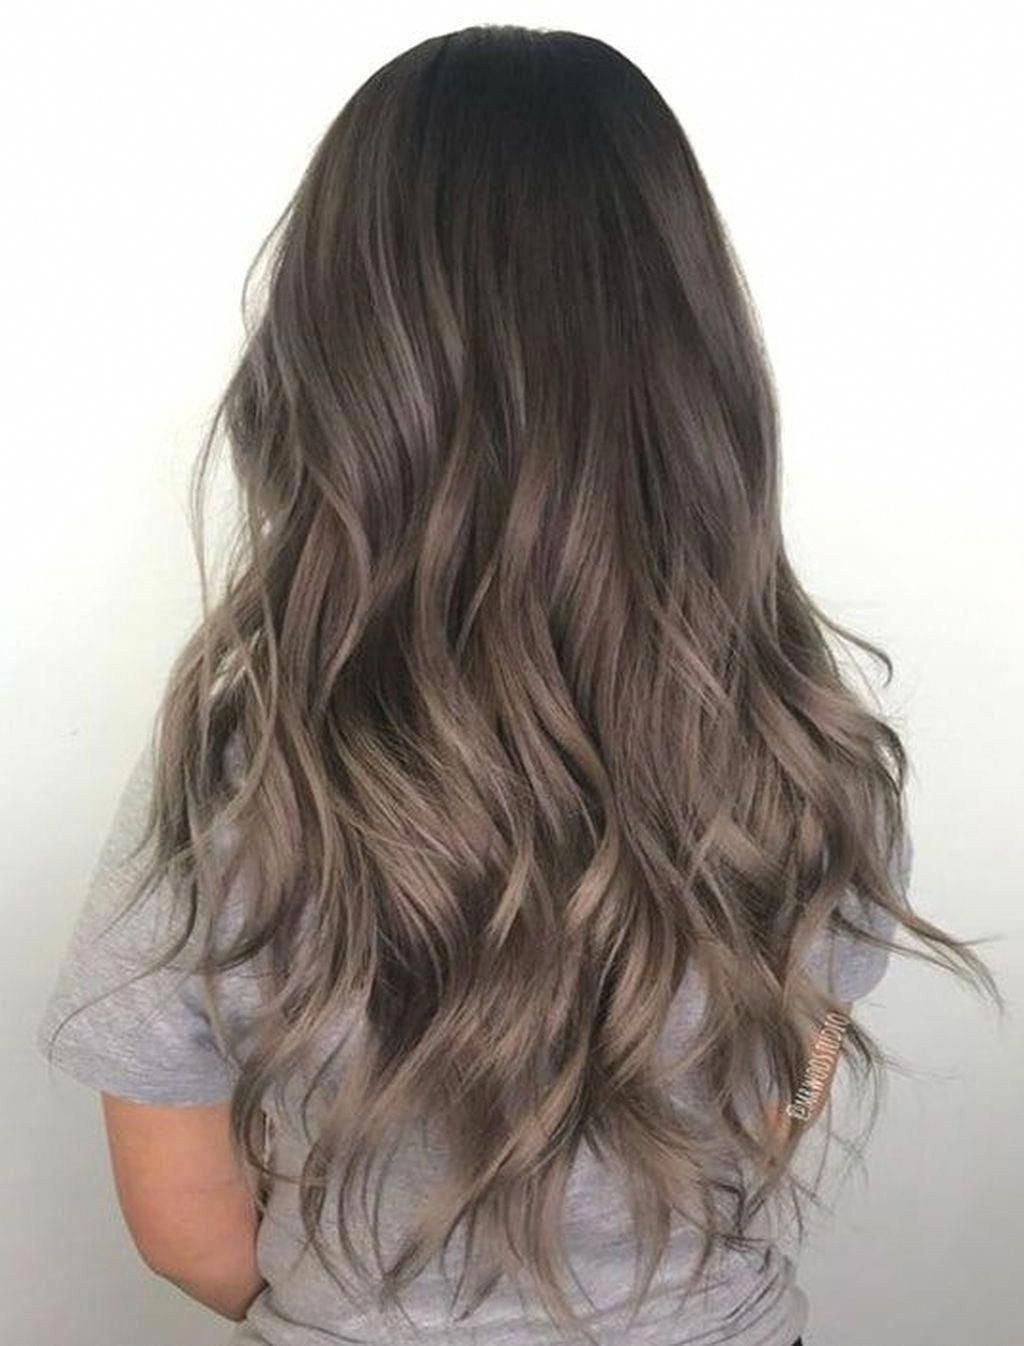 Fantastic Brunette Balayage Hair Color Ideas27 Haircolor Haircolorideas Brownhairbalayage Ash Brown Hair Color Hair Color Balayage Hair Styles